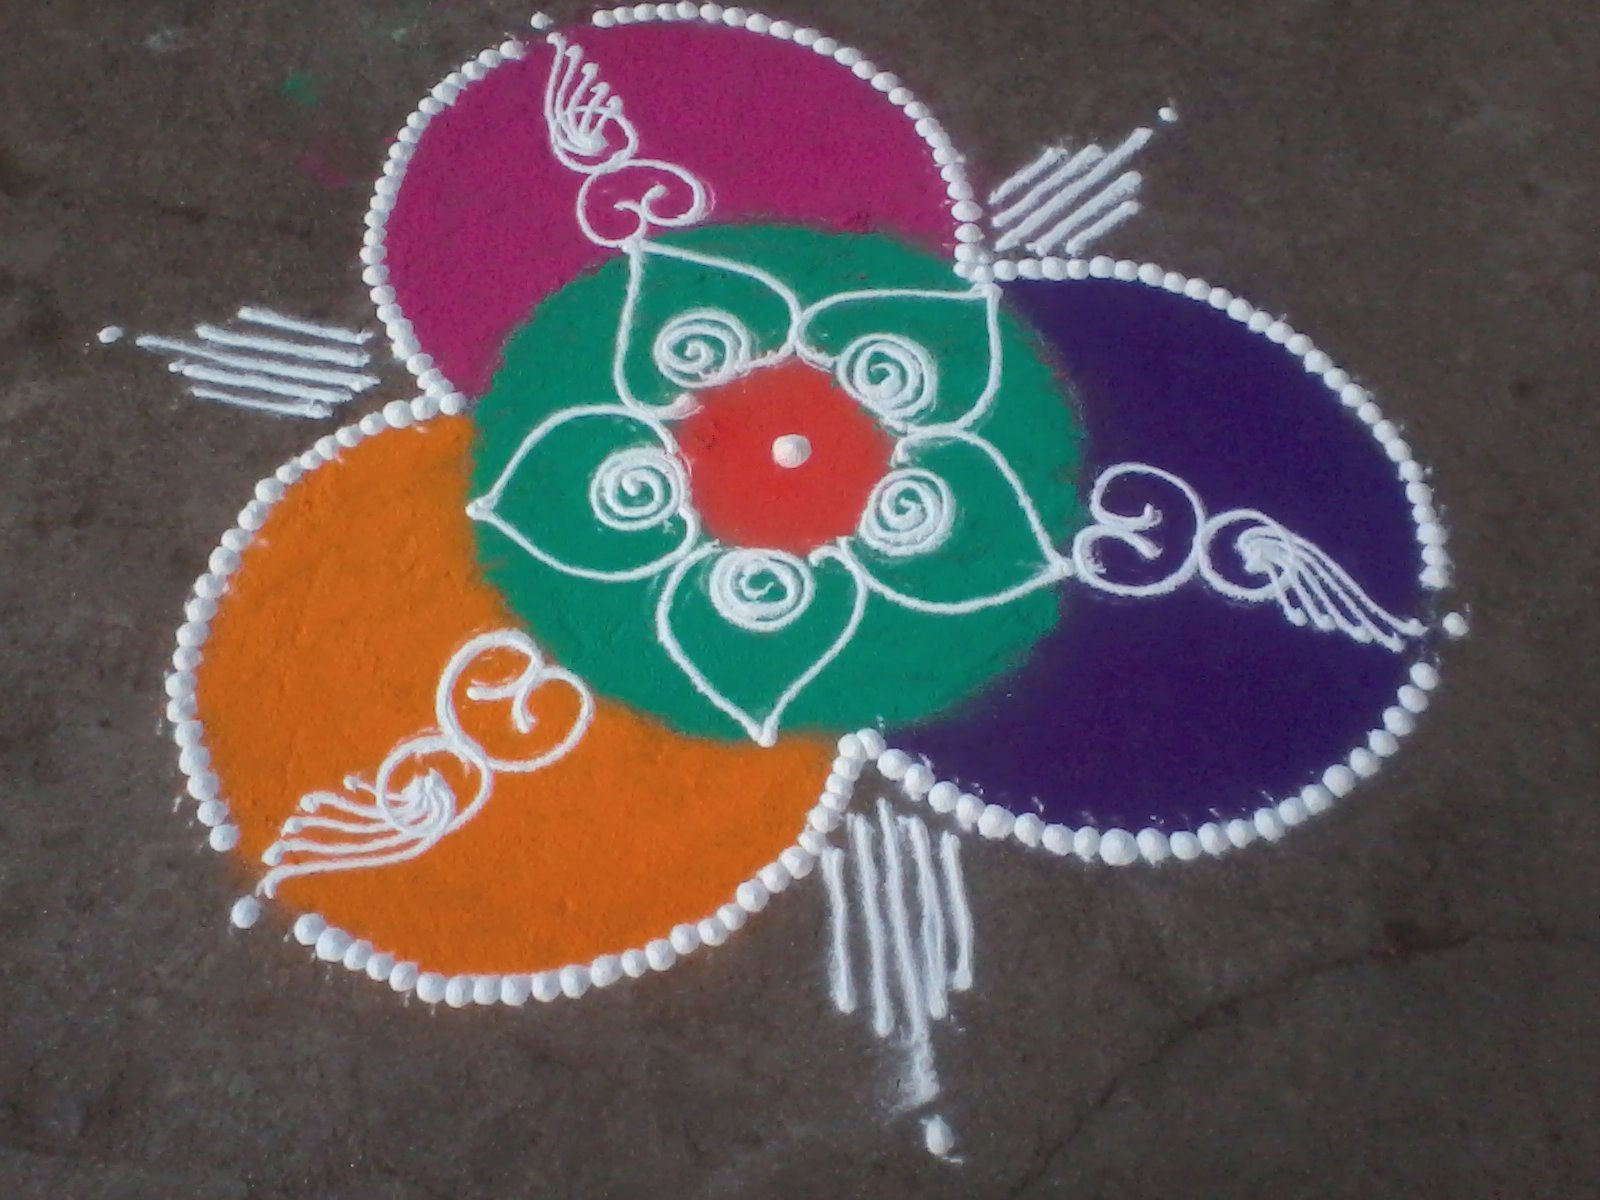 easy and simple sanskarbharti rangoli design. | Sanskar bharti ... for Rangoli Designs With Theme Go Green  55jwn